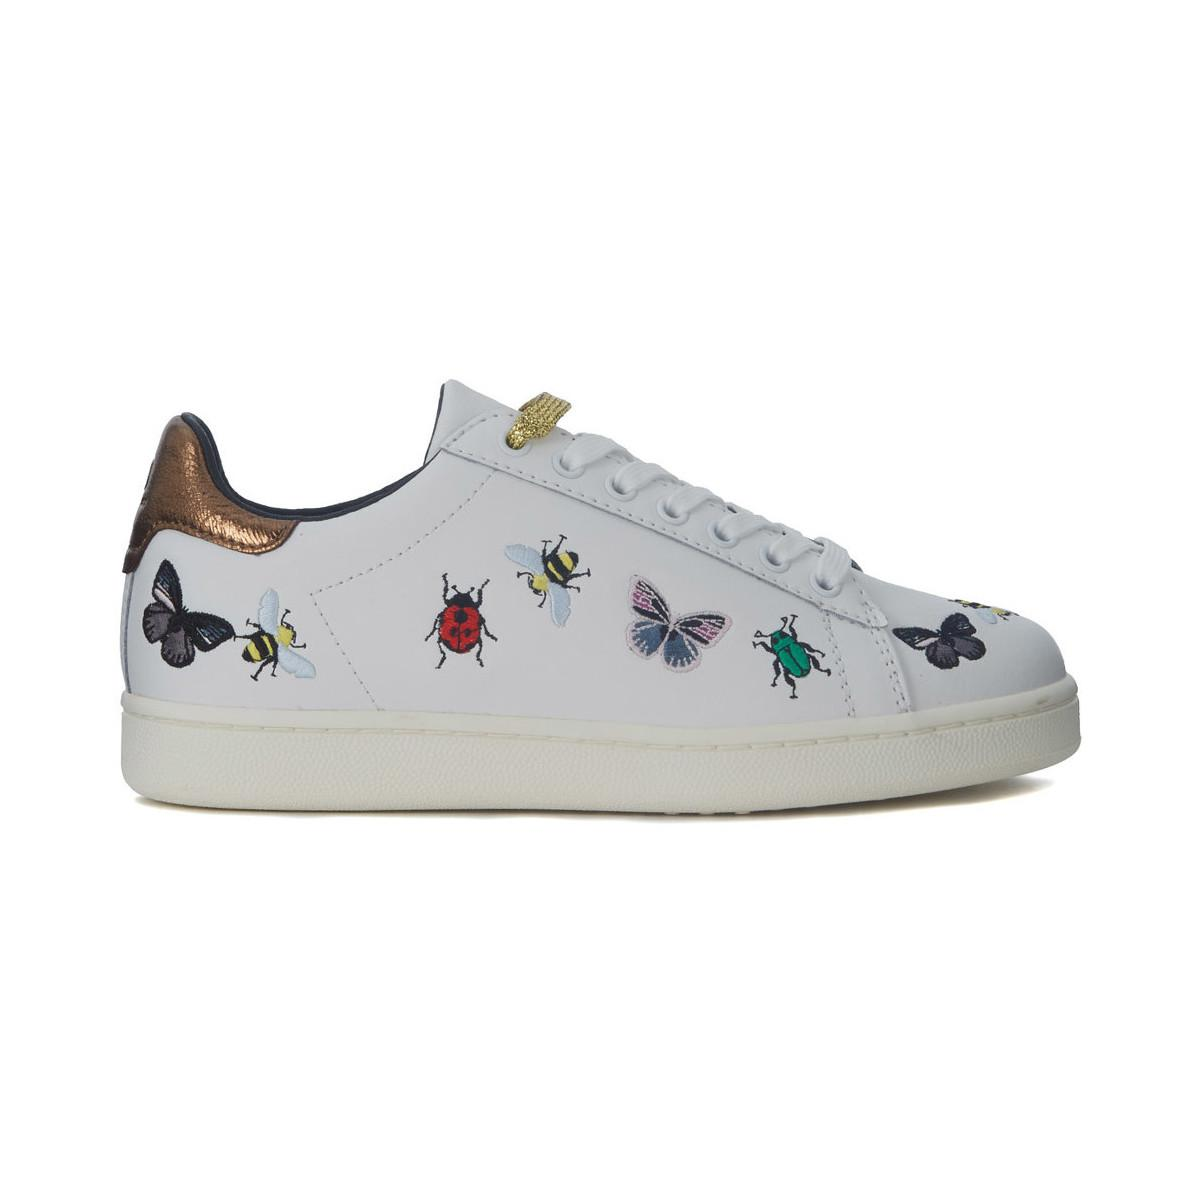 MOA Sneaker Moa Bugs In Pelle Bianca Con Ricami Women's Shoes (trainers) In White